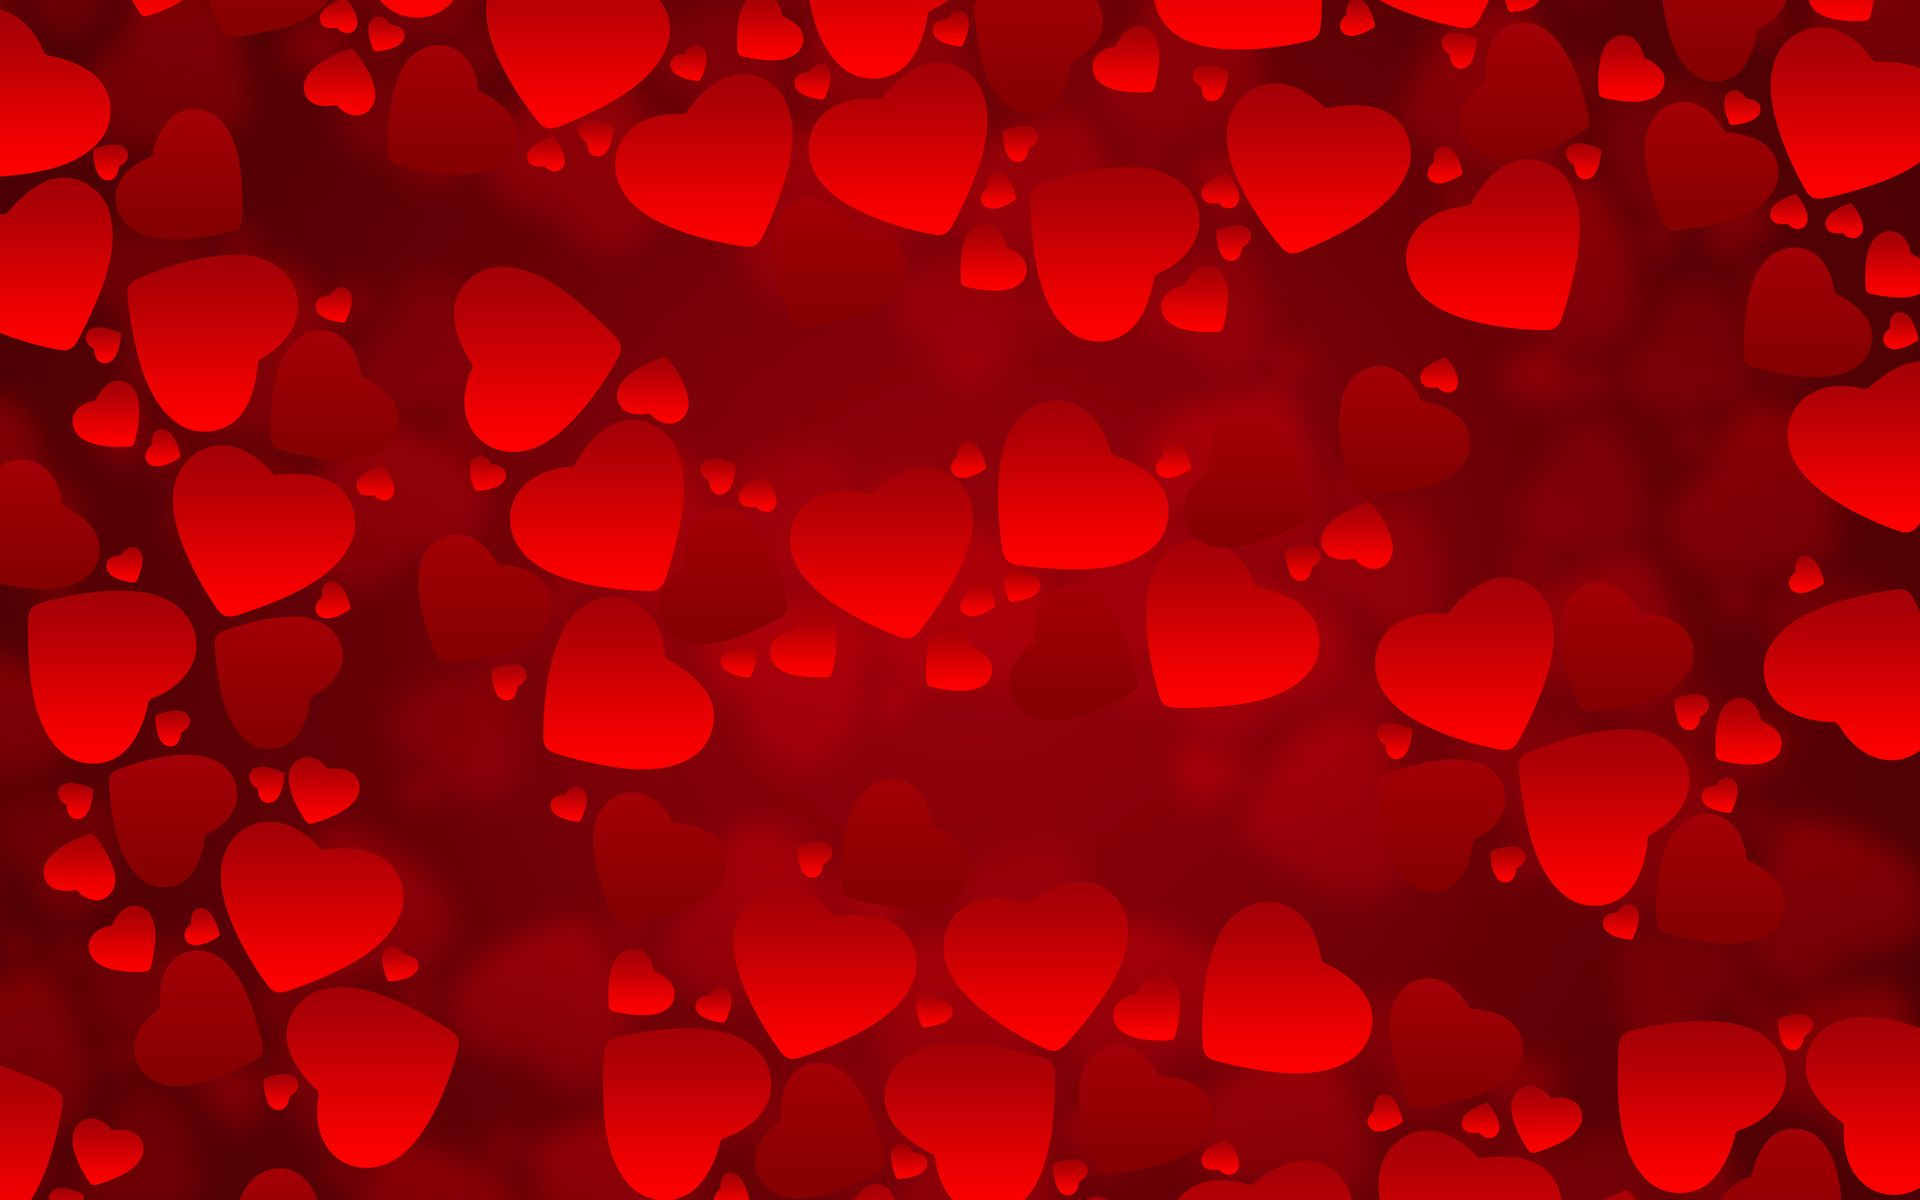 Red Hearts Wallpapers